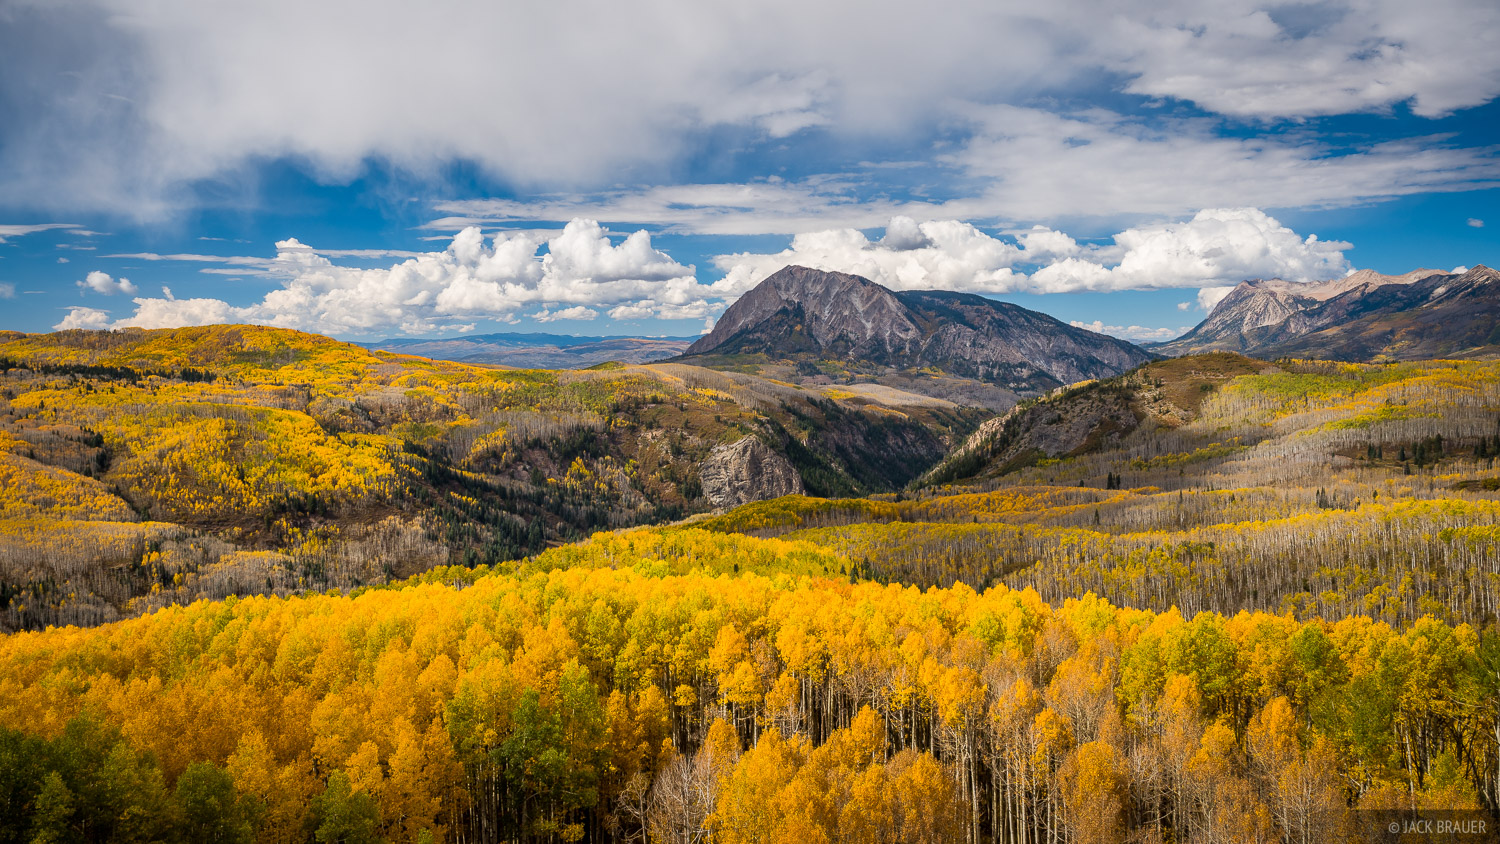 Colorado,Elk Mountains,Kebler Pass, Marcellina, aspens, October